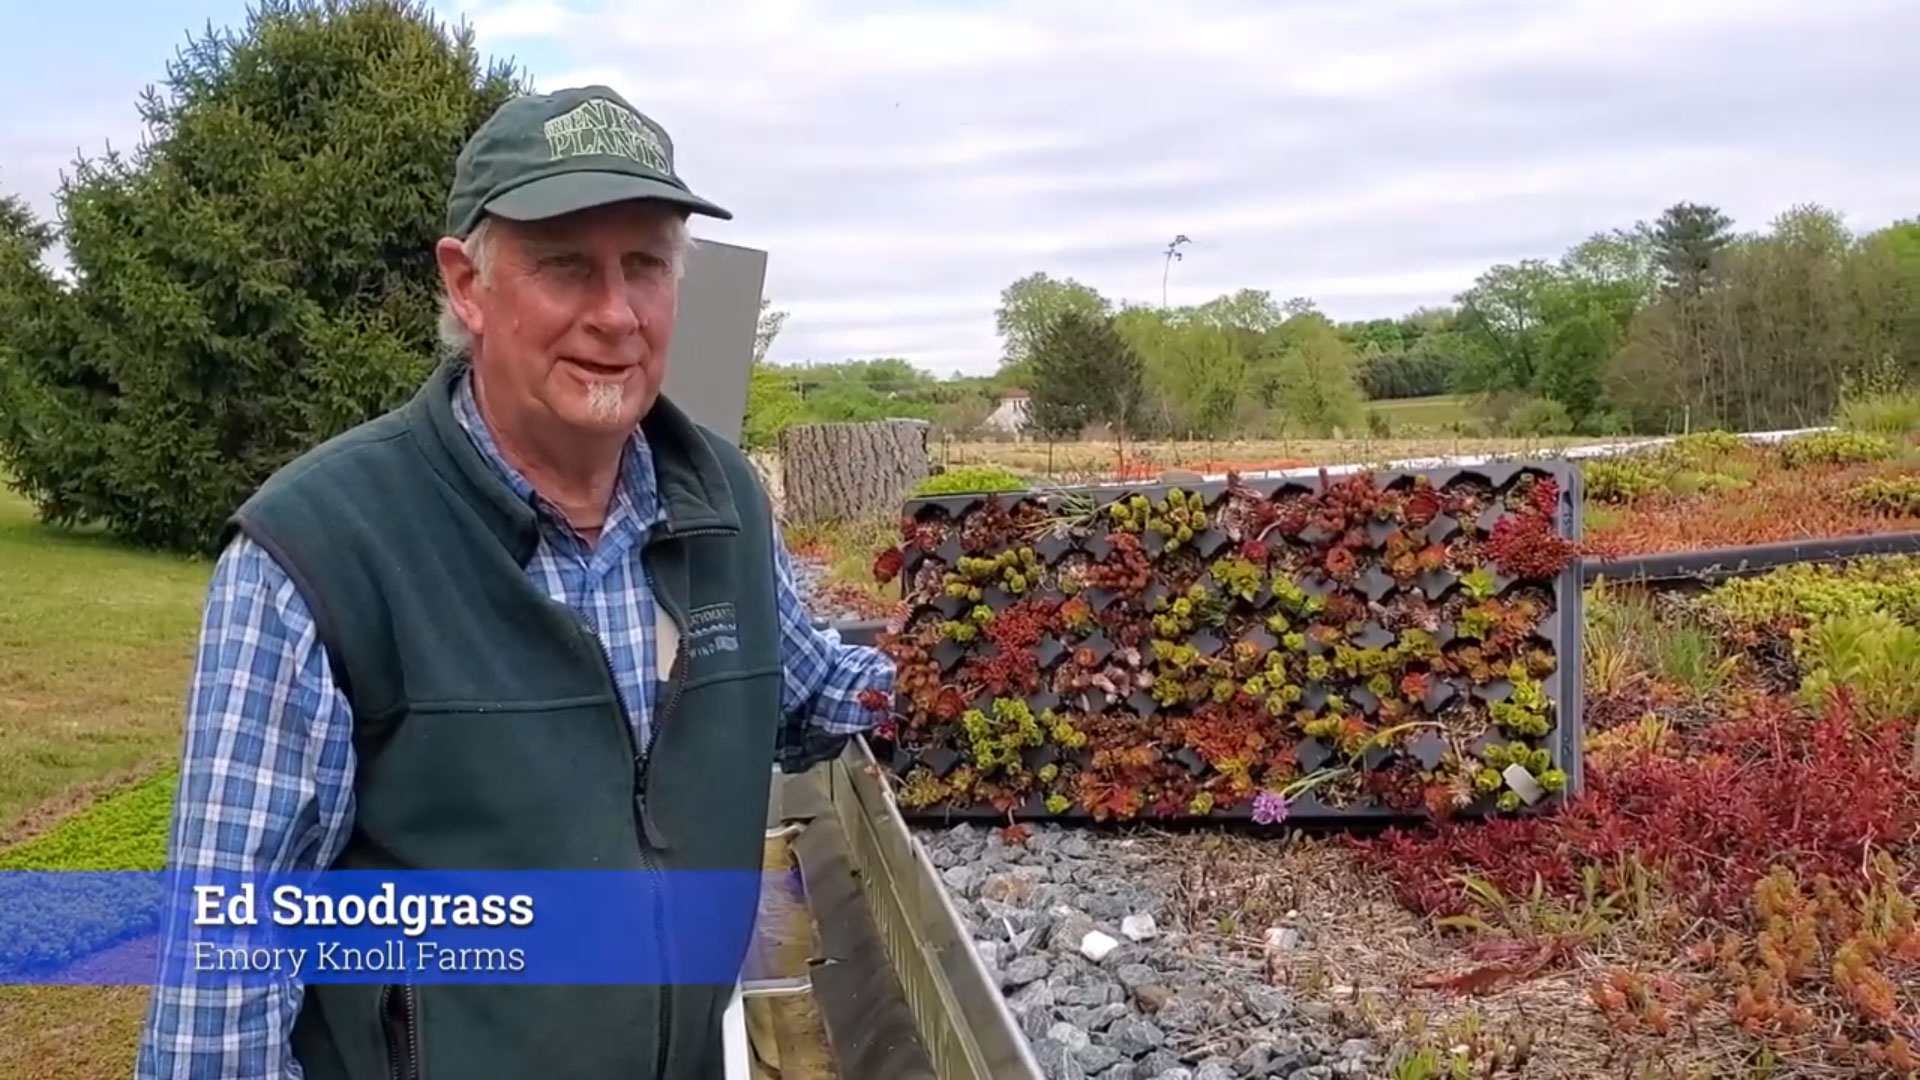 Green Roof Weed Control Using Saturated Steam